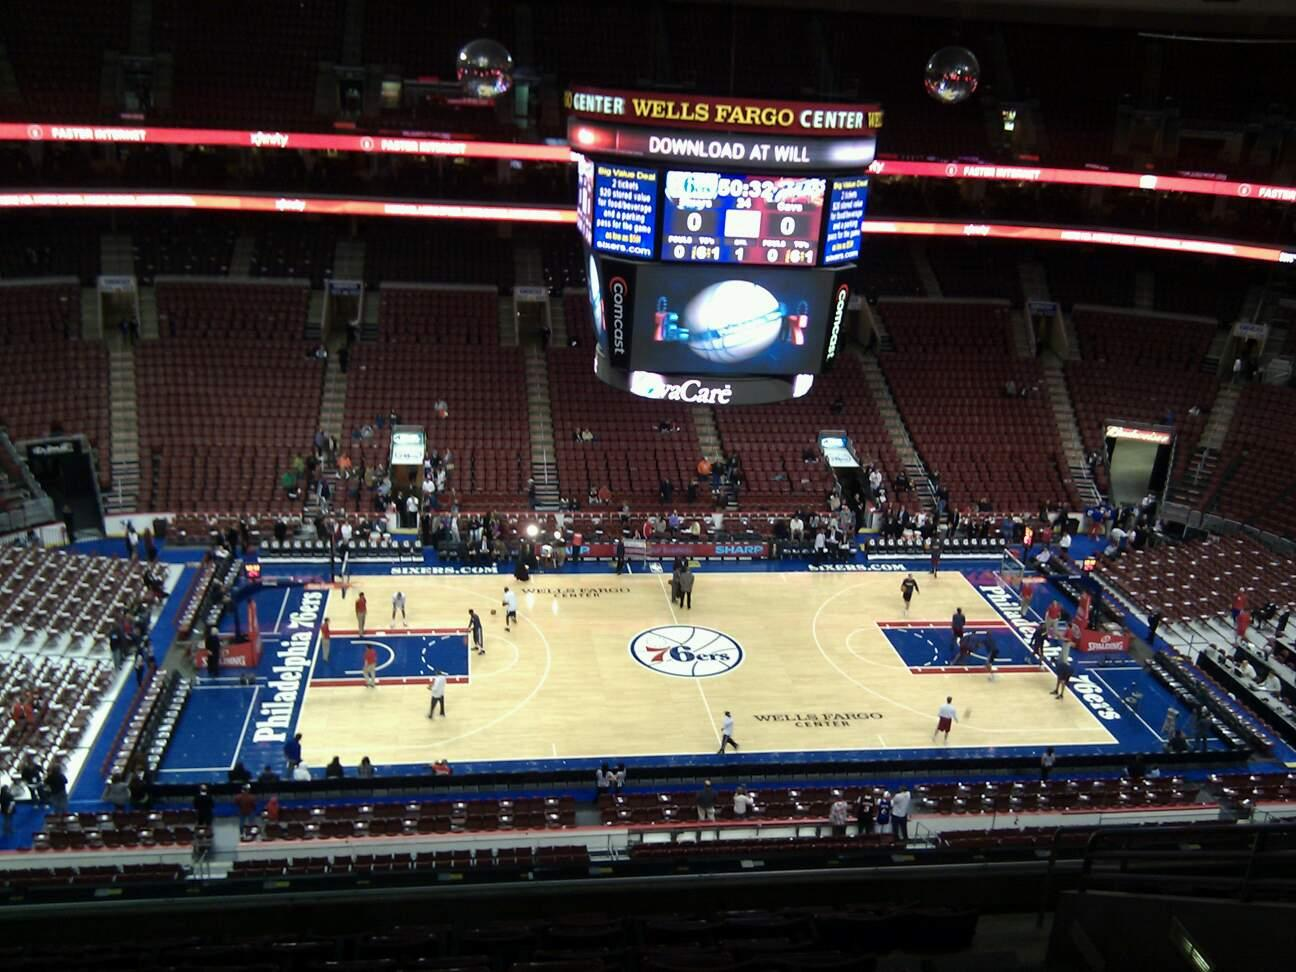 Wells Fargo Center Section 212 Row 10 Seat 13